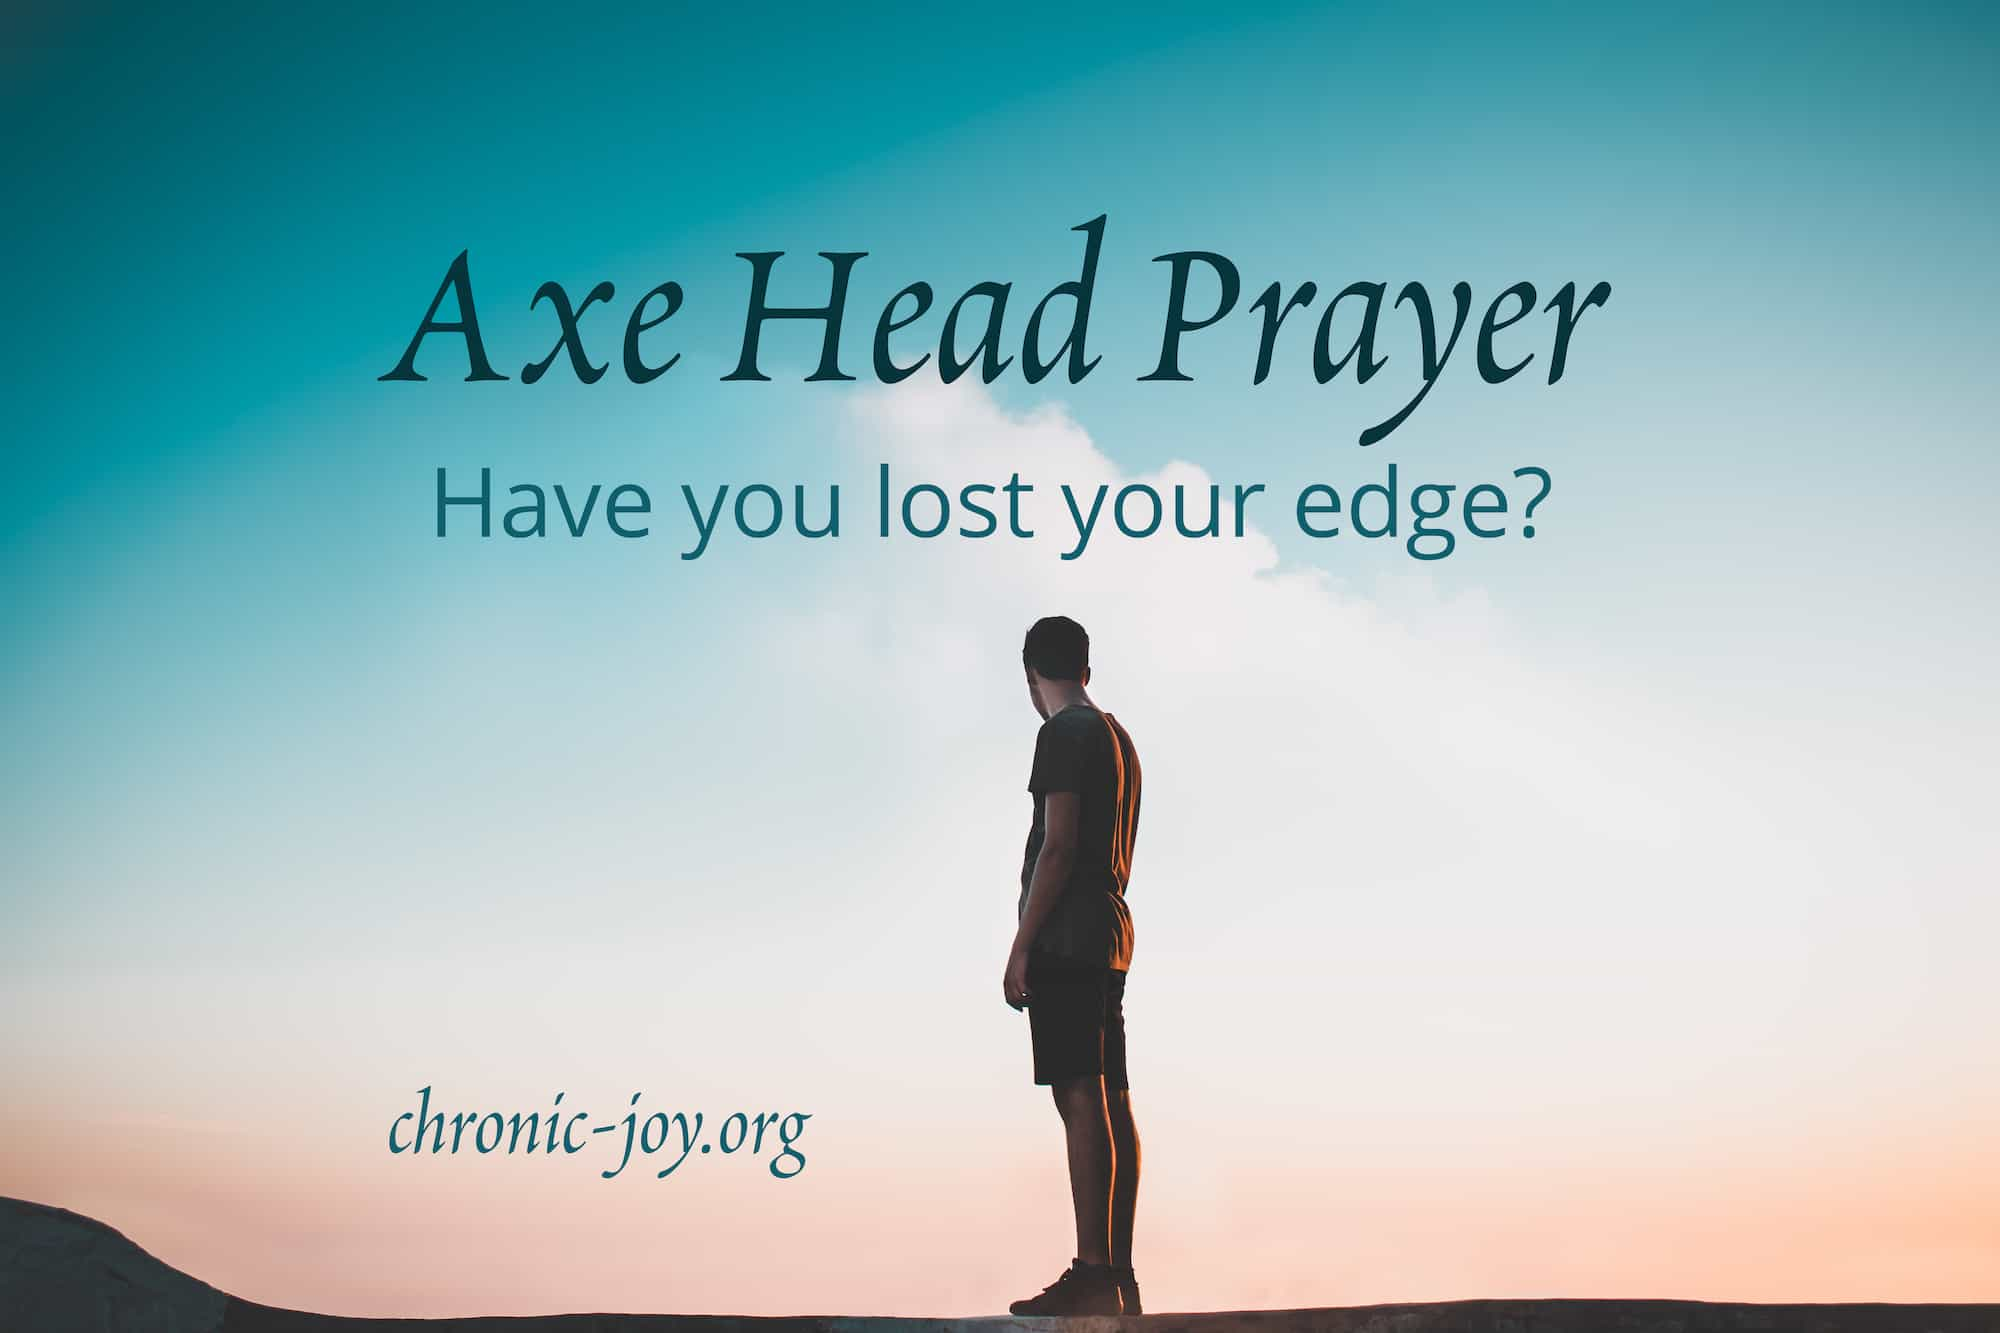 Axe Head Prayer • Have you lost your edge?